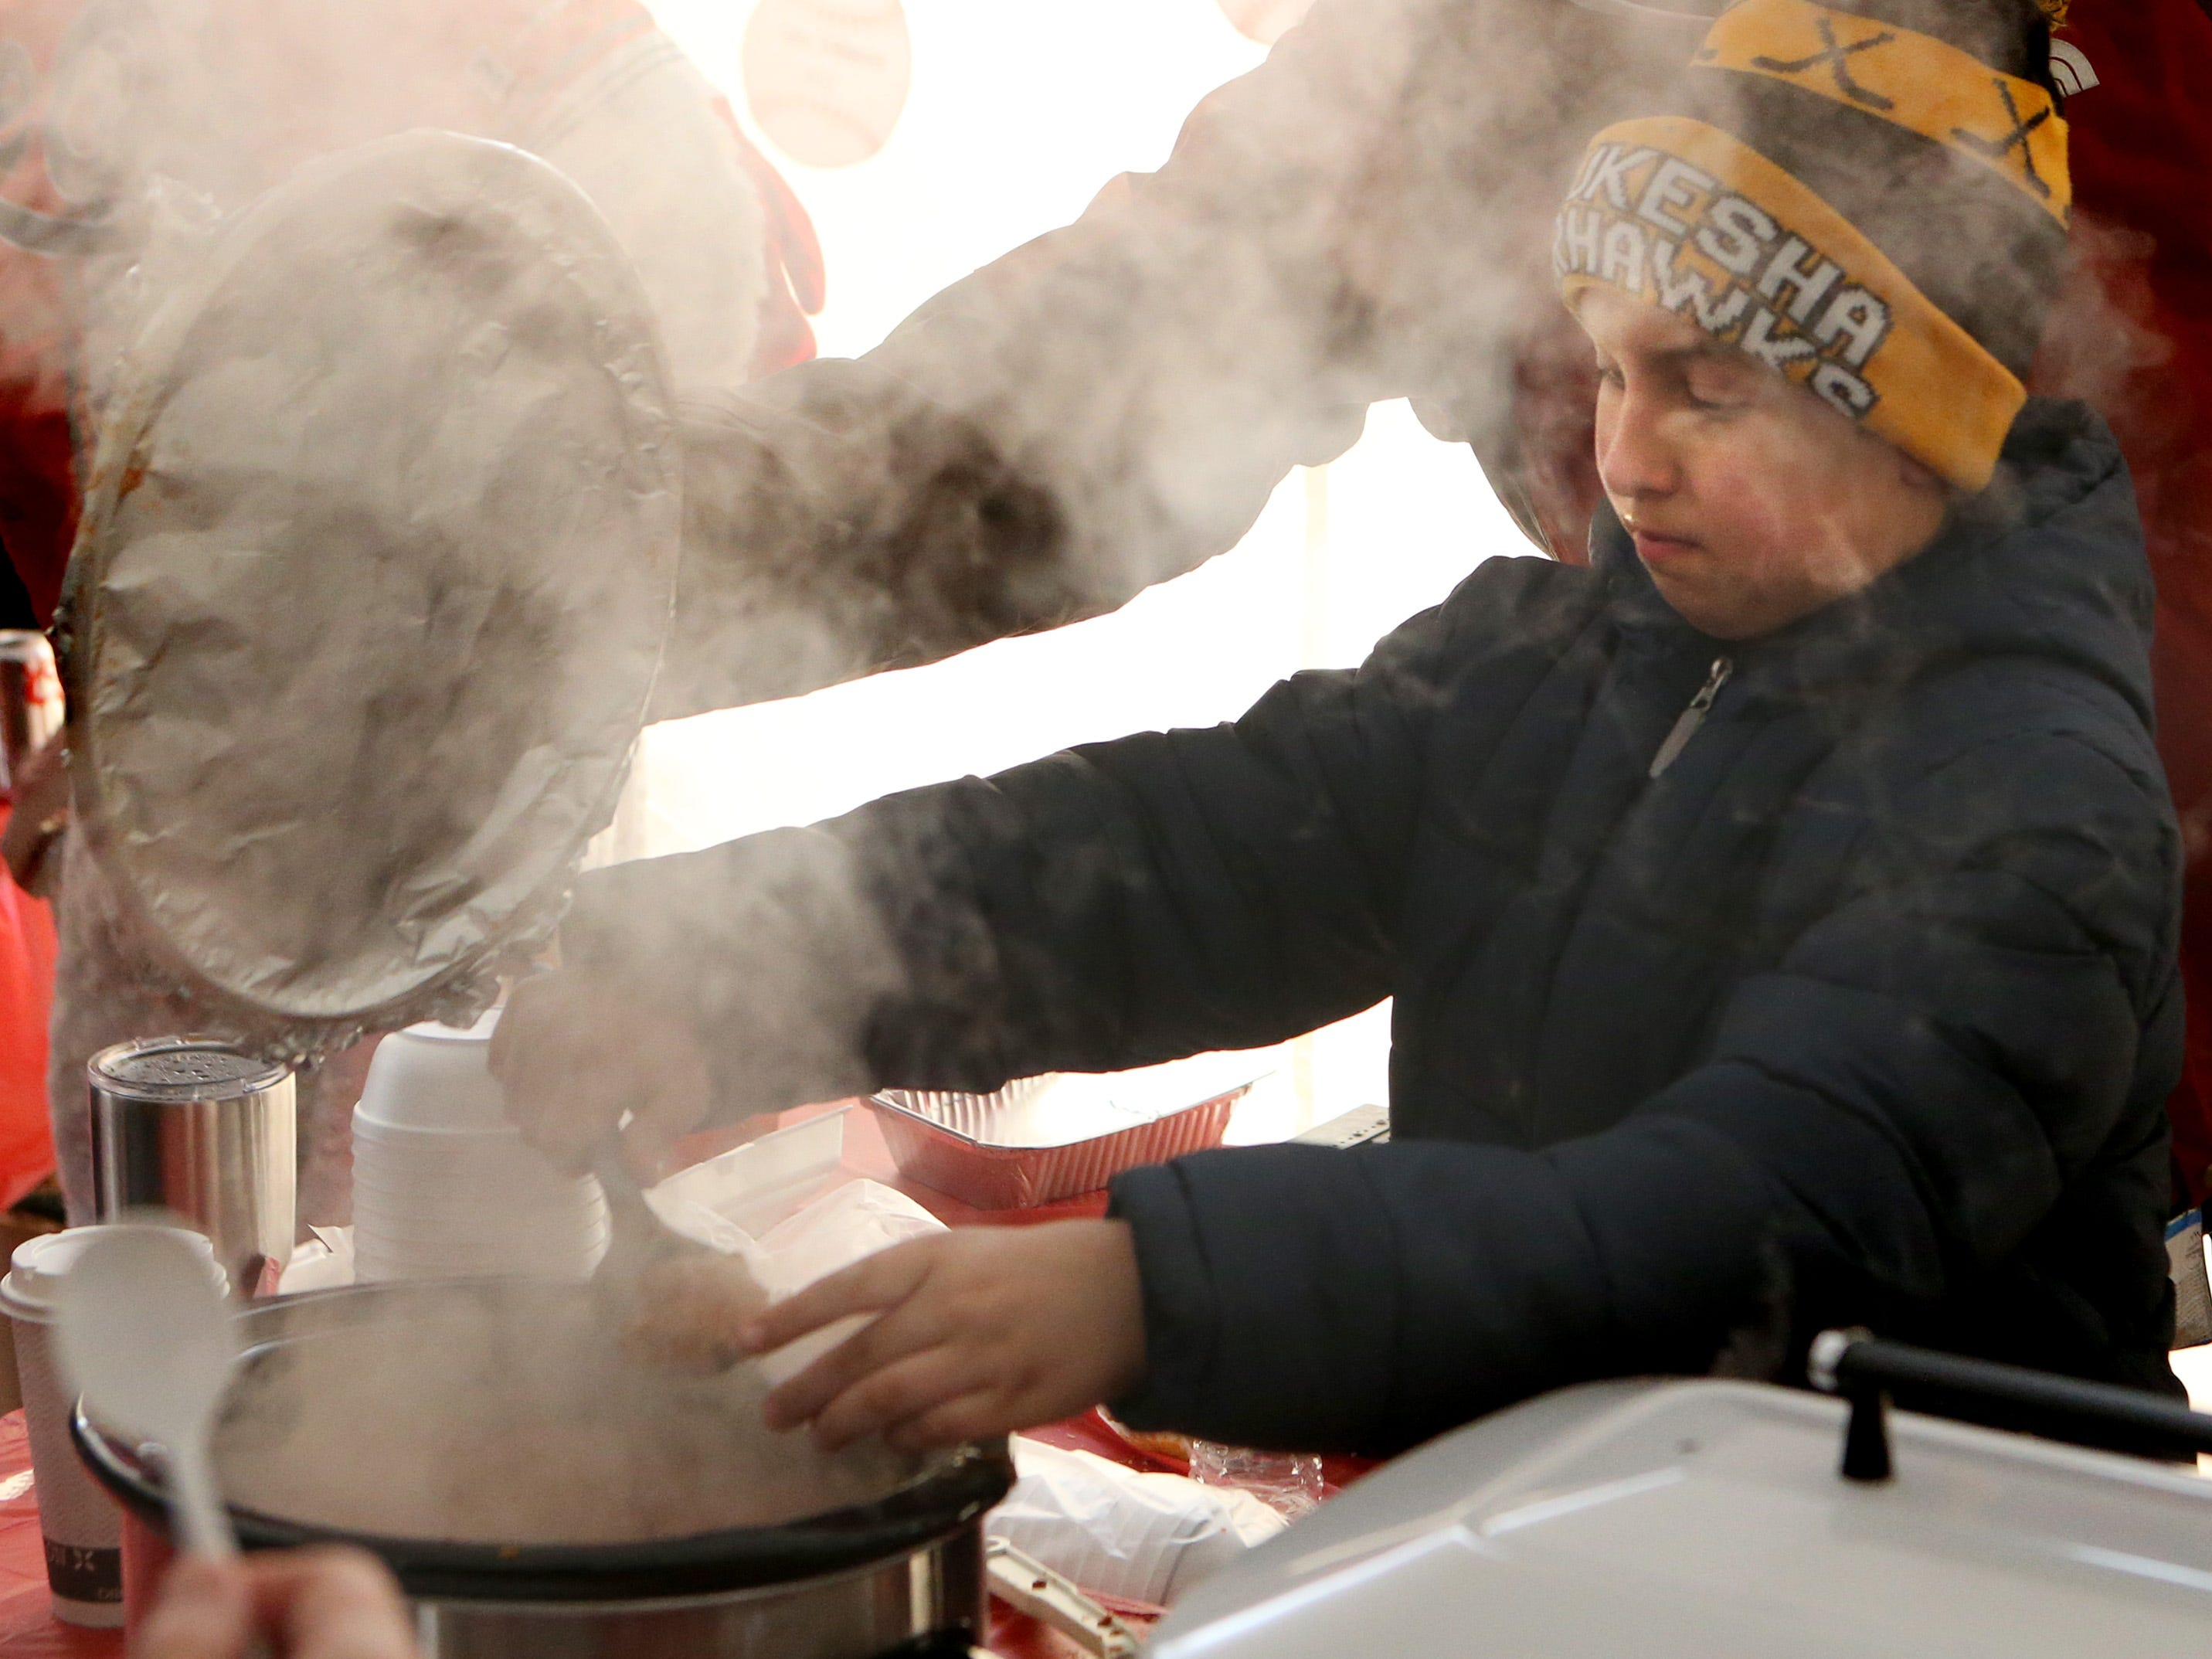 Steam swirls around Luke Belawski as he scoops up a portion of Buffalo Chicken Chili offered by the 5 O's U11 baseball team Cook Off tent where 11 non-profit groups offered different takes on the classic winter fare during Oconomowoc's Chili Fest on Jan. 26.